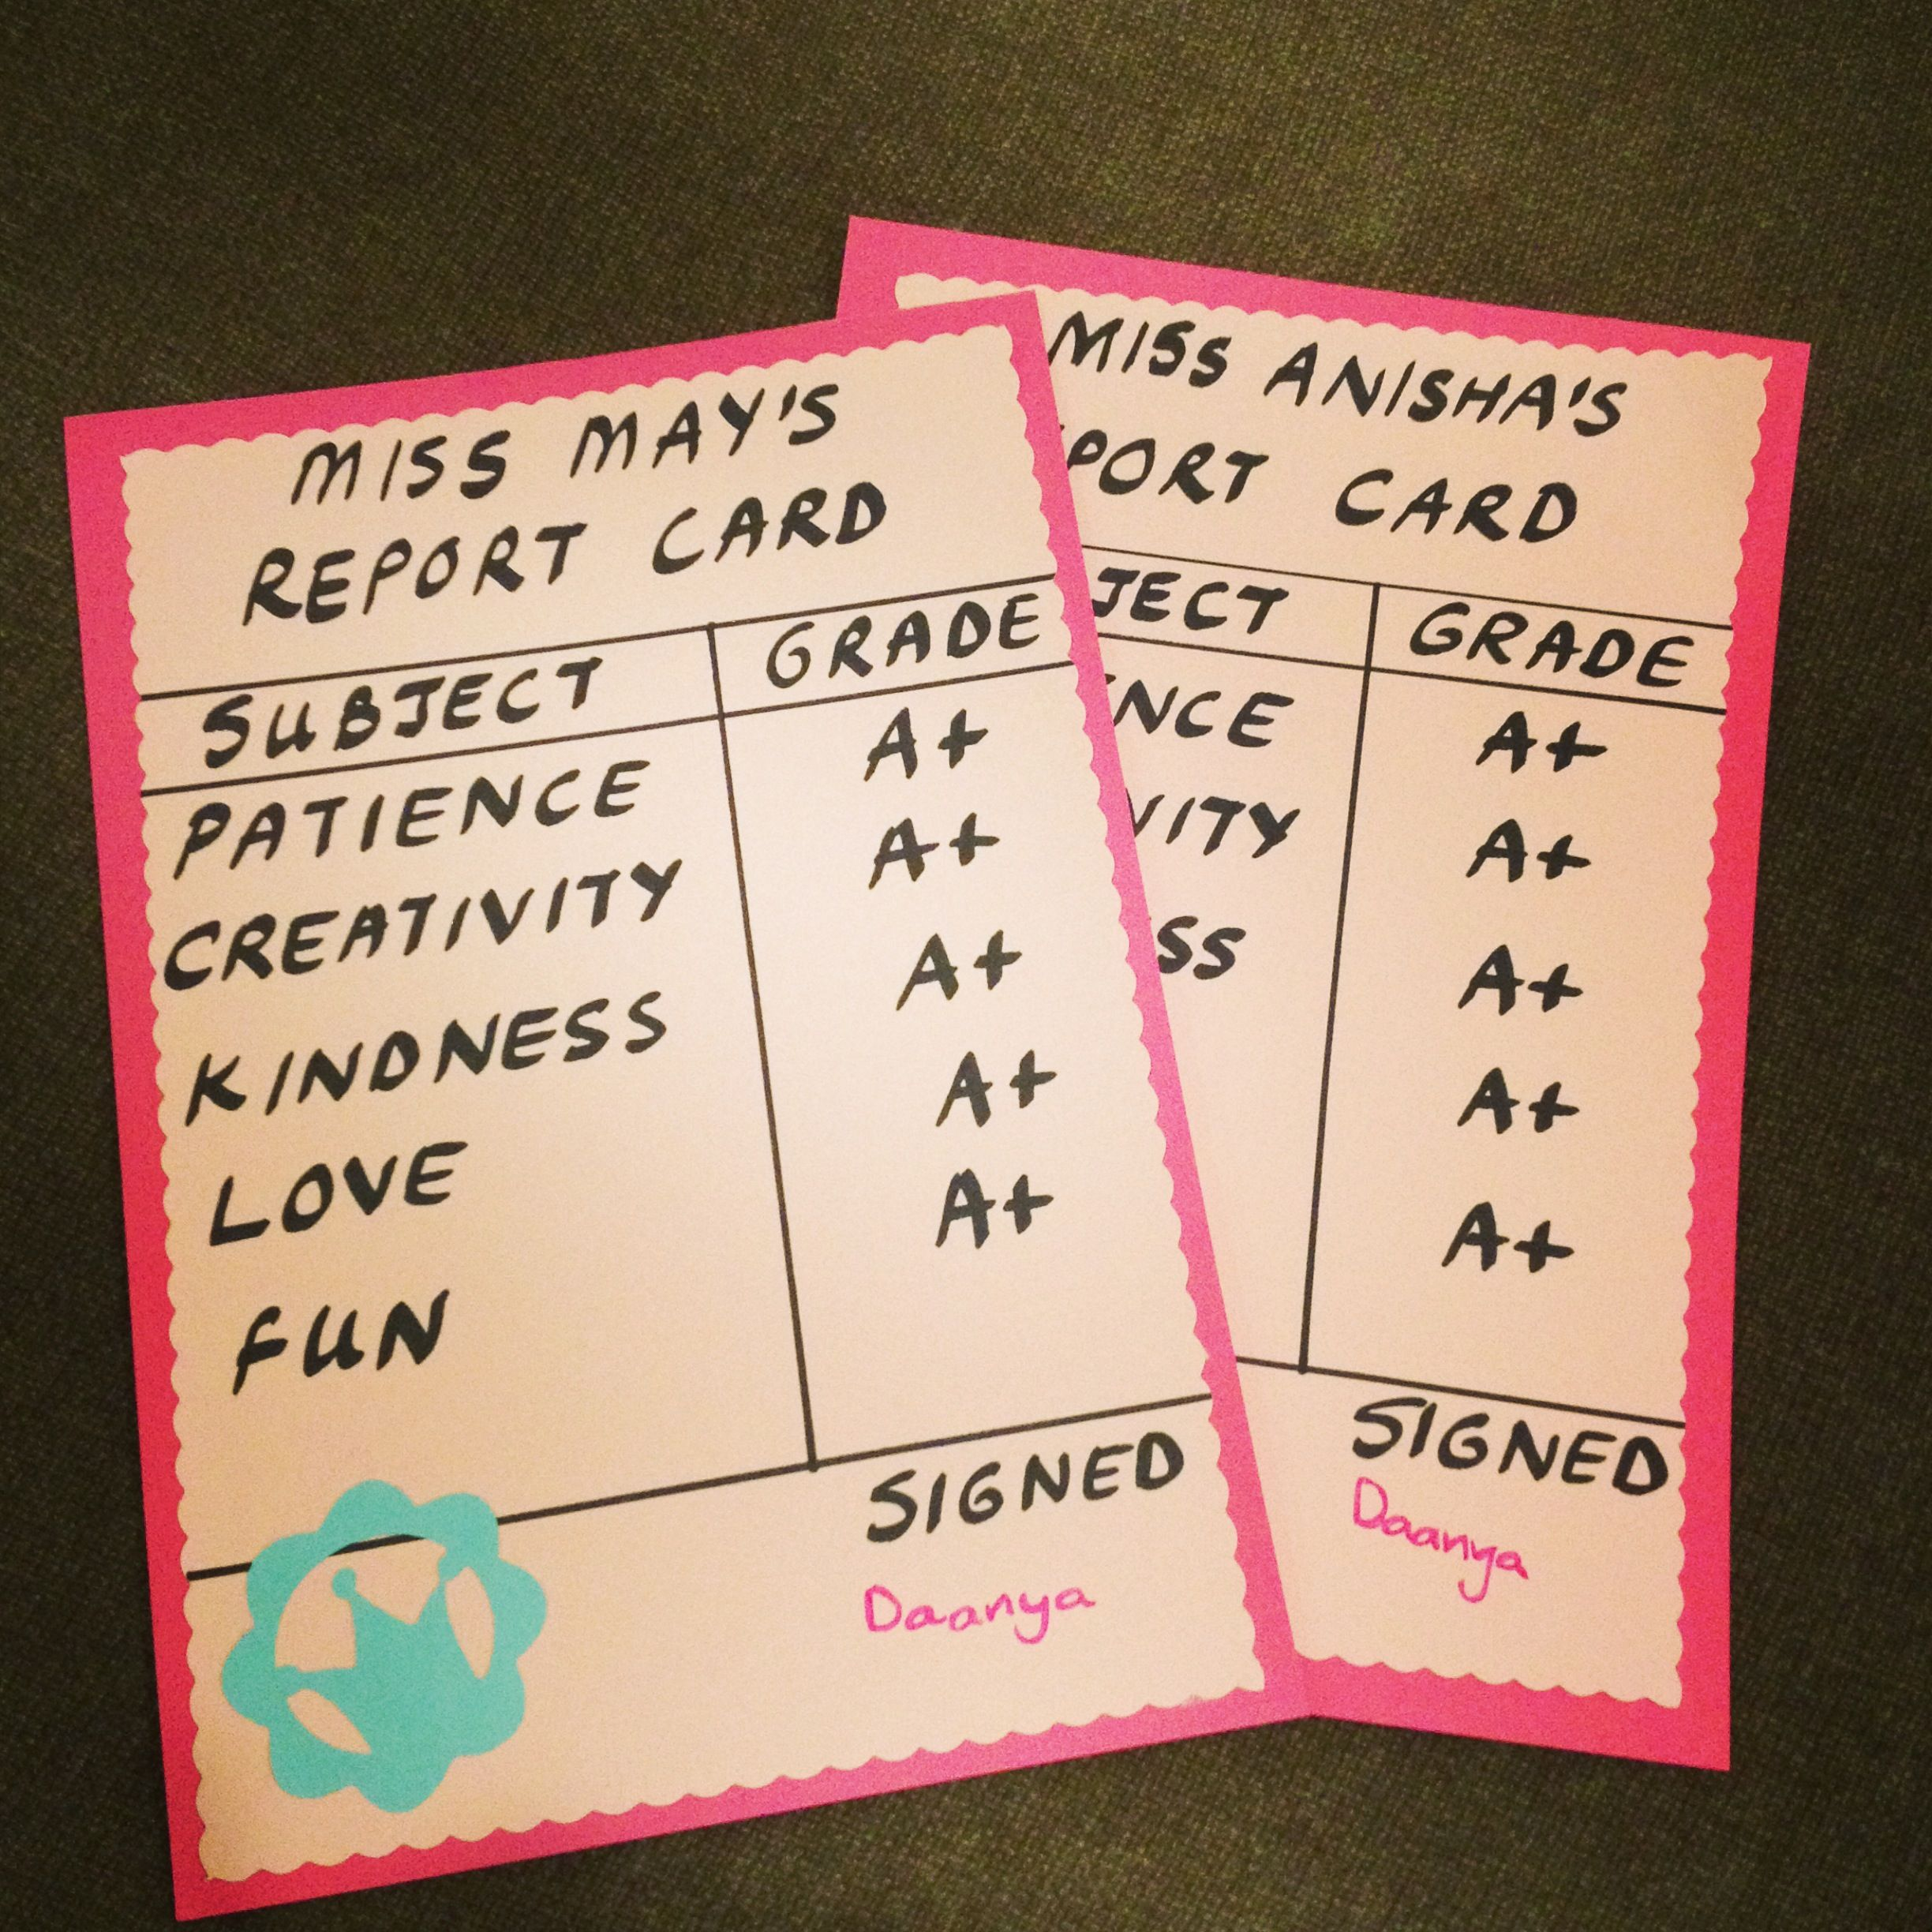 We Made These Sweet Report Cards For The Teachers On The